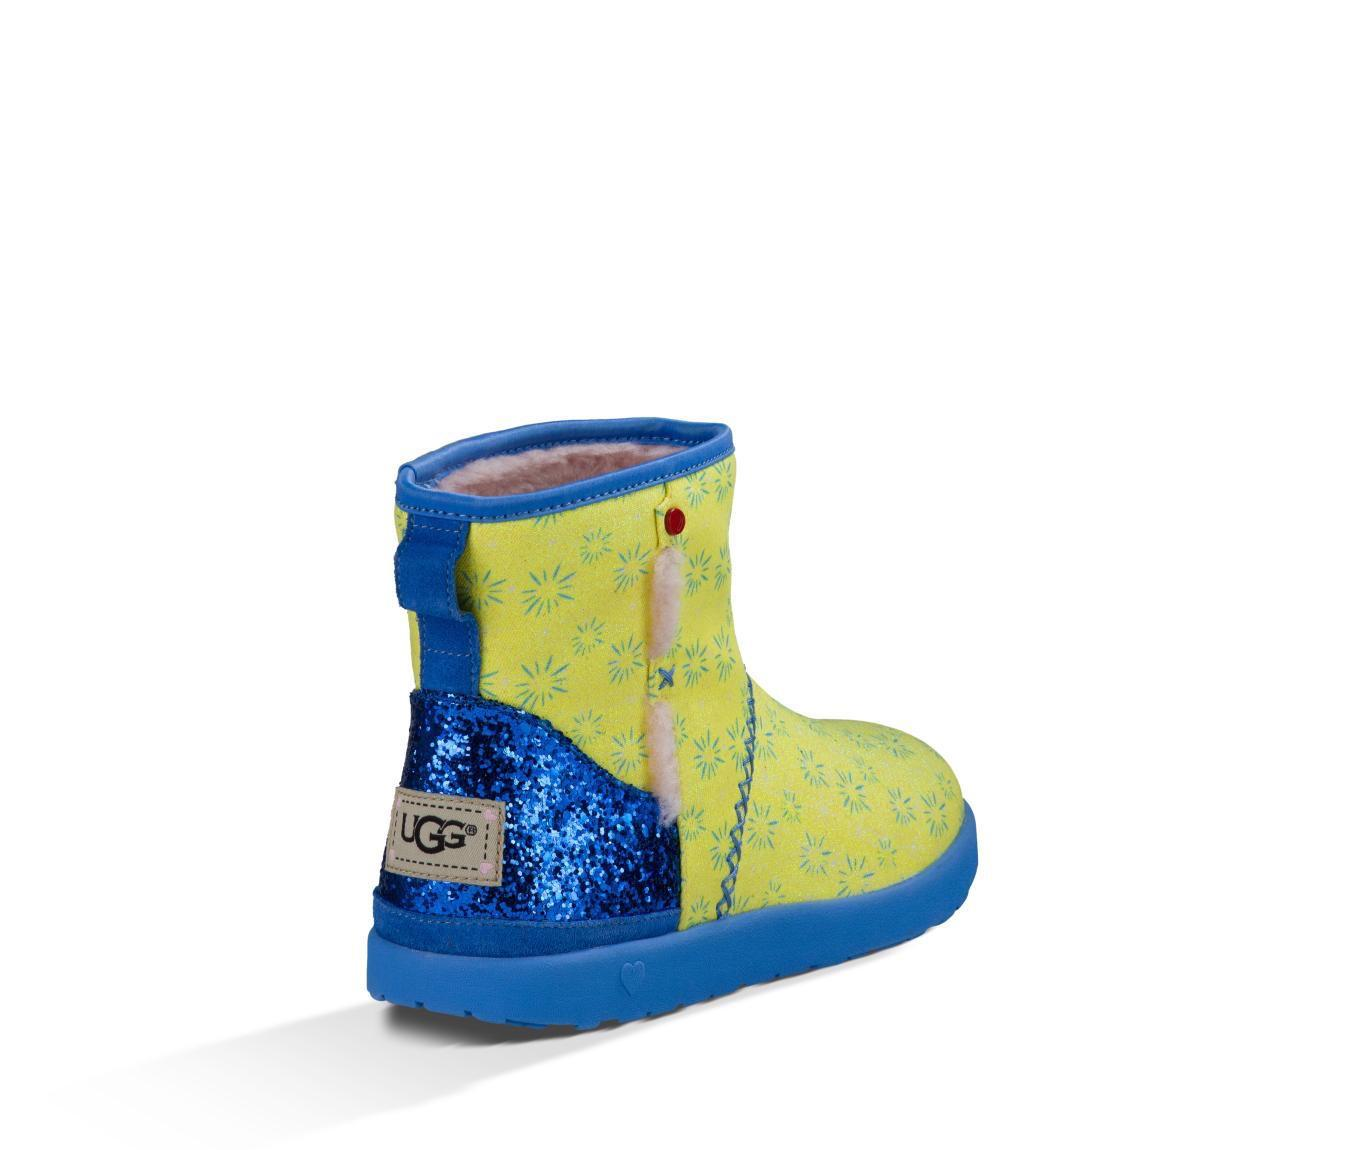 UGG Australia Yellow and Blue I Heart Disney Pixar Inside Out Girls Slip On Joy Boots/Booties Size US 4 Regular (M, B) - Tradesy